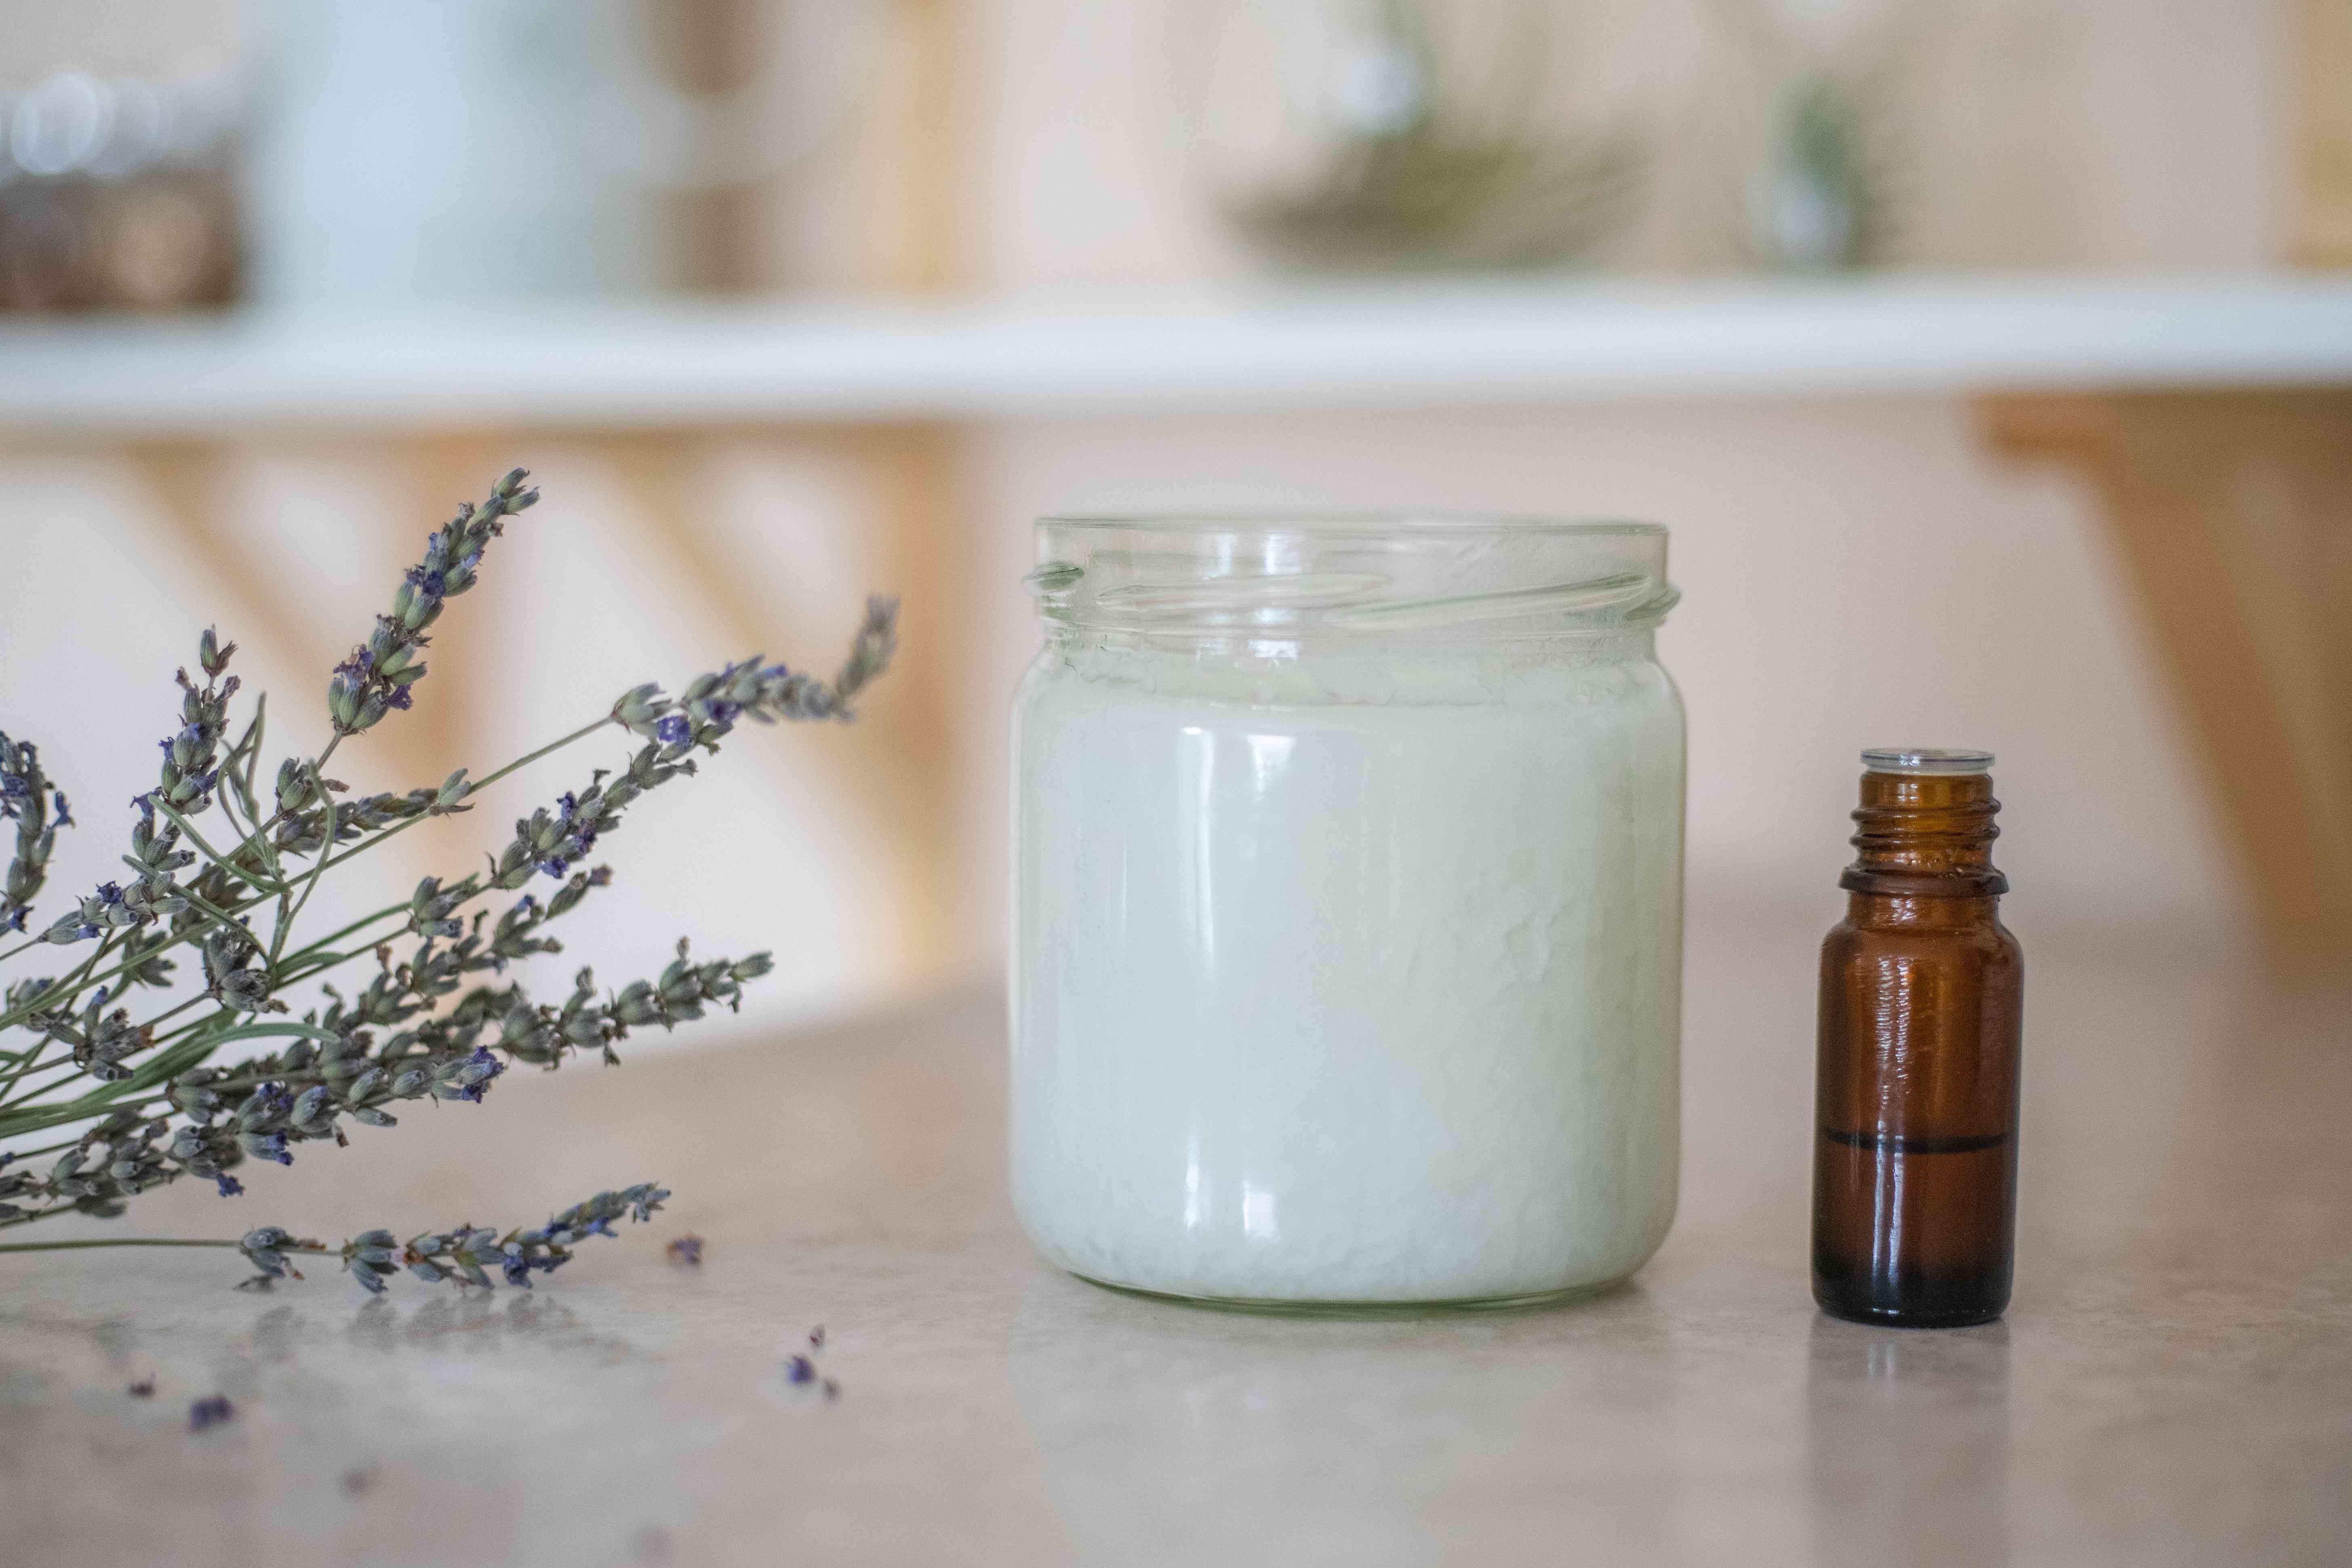 a glass jar of coconut oil next to lavender essential oil and a sprig of dried lavender flowers